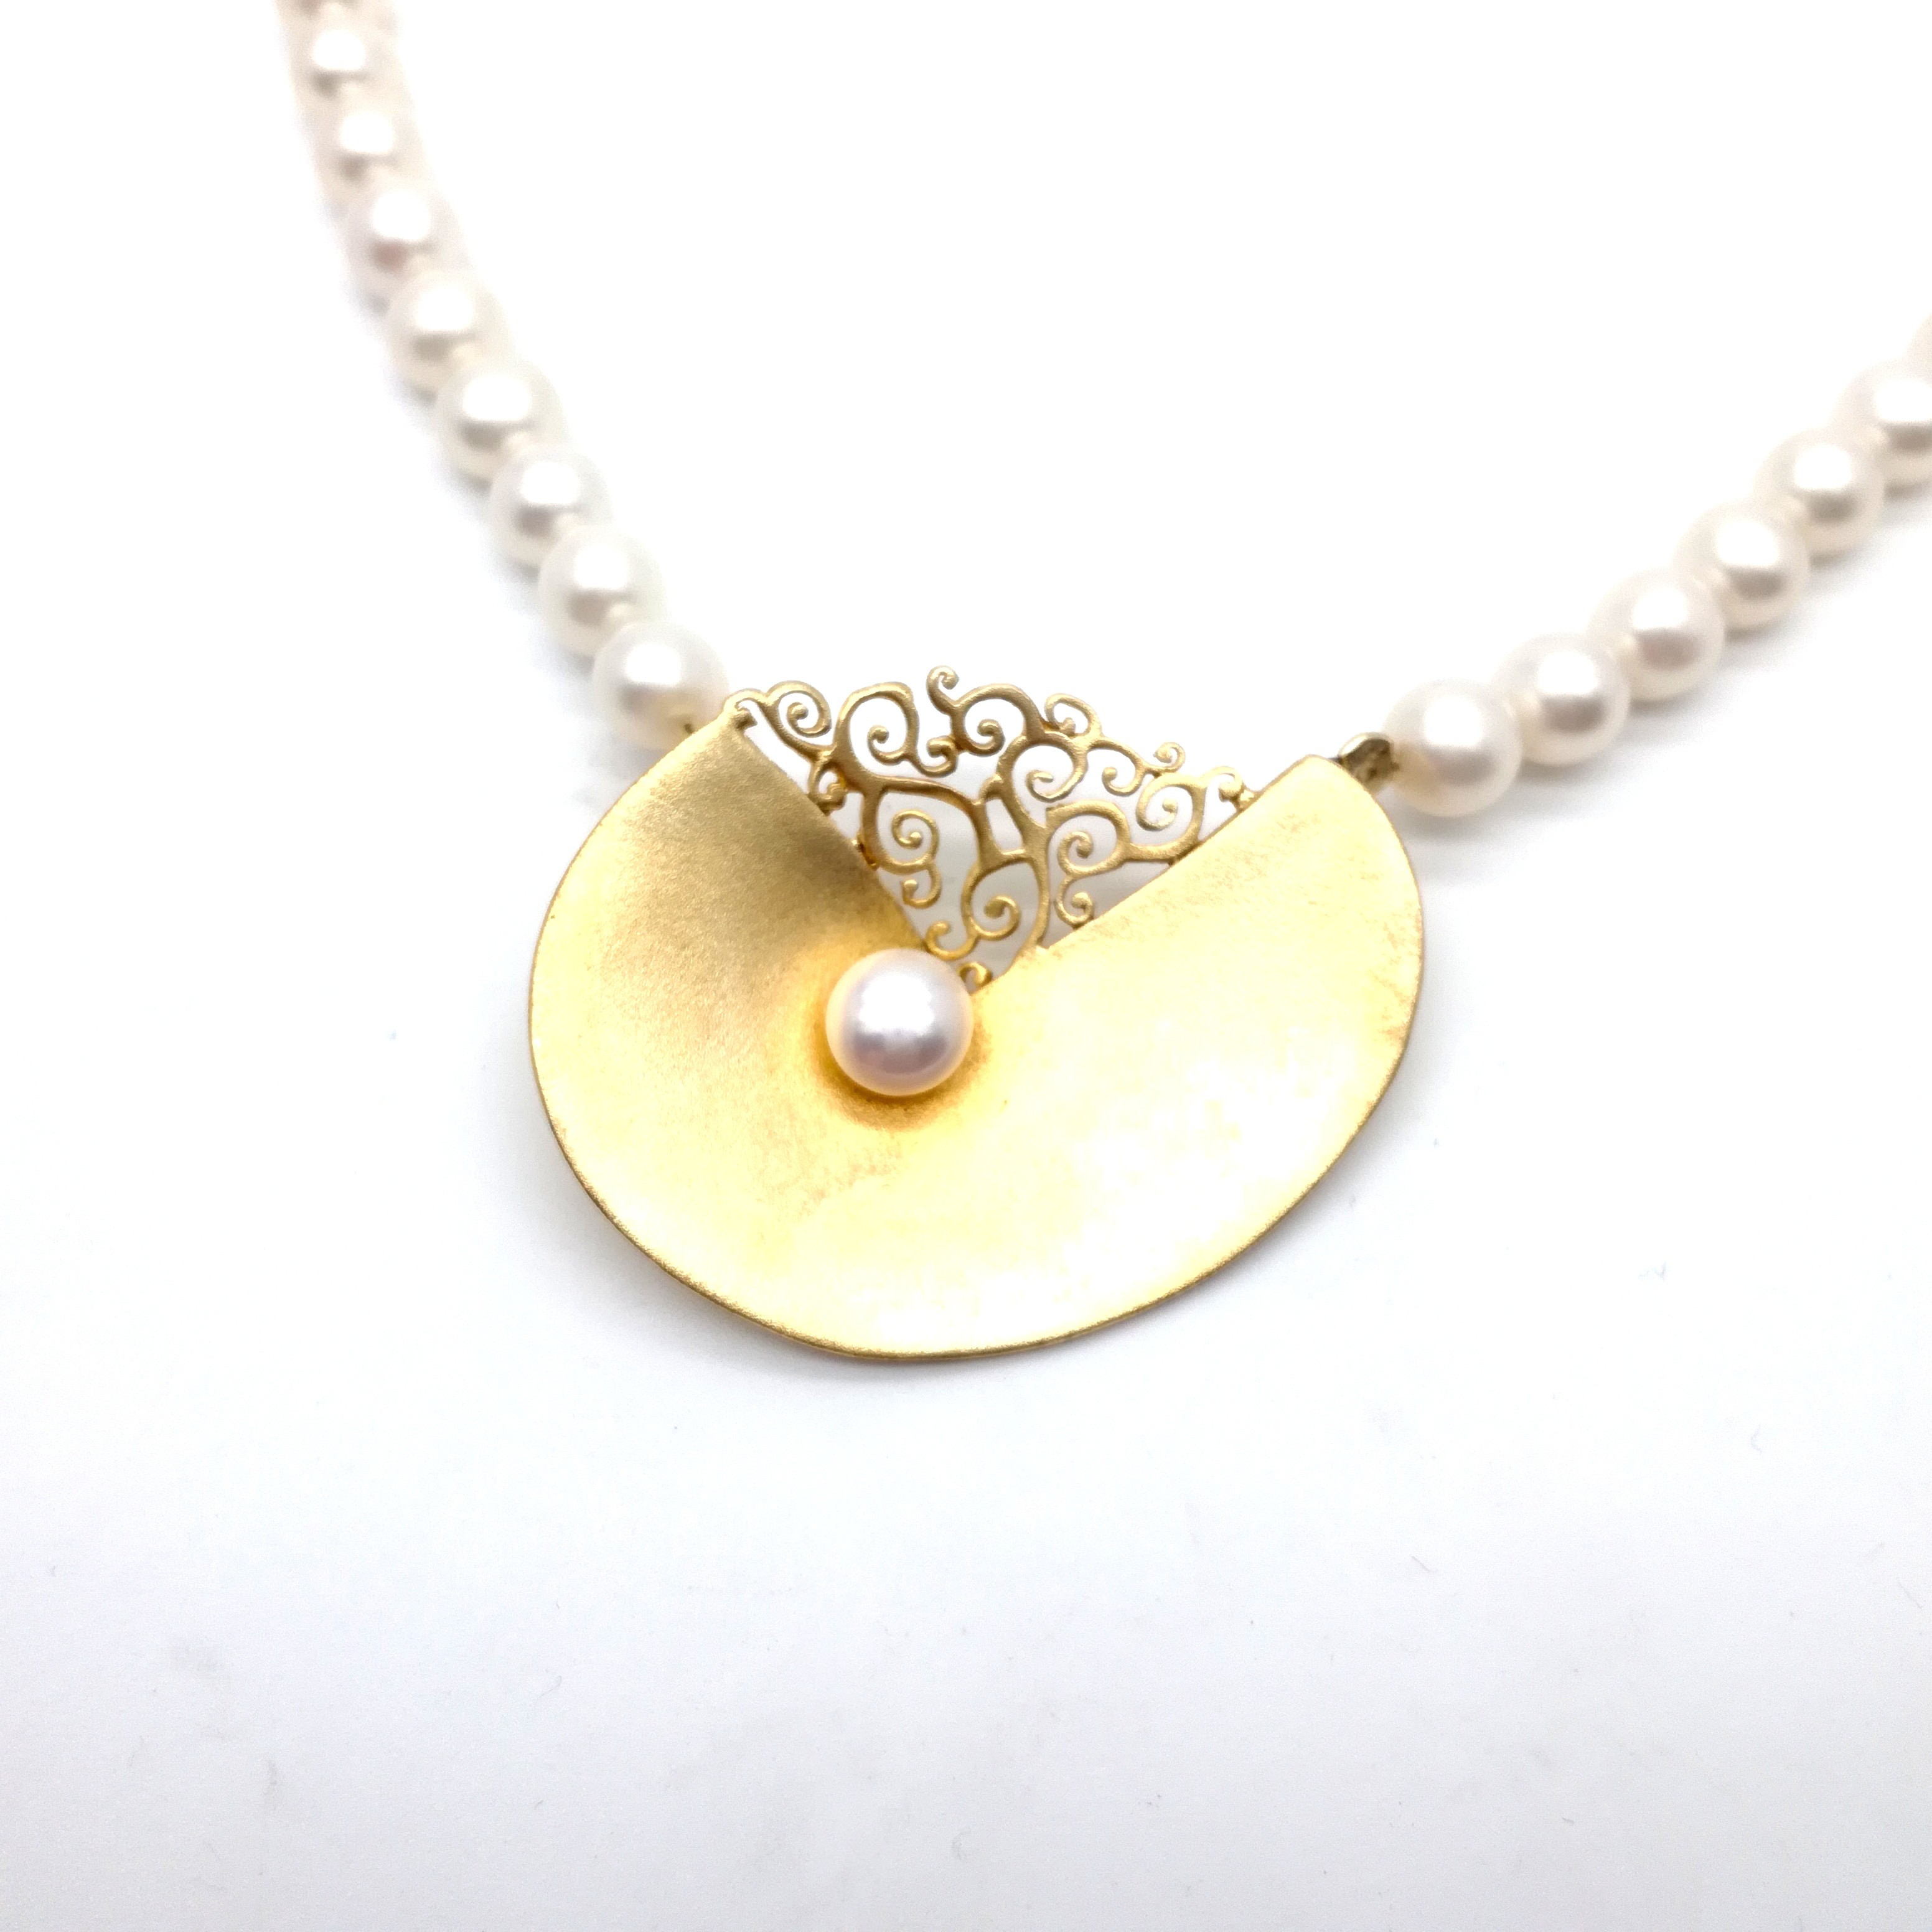 Silver necklace 925 gold plated with pearl